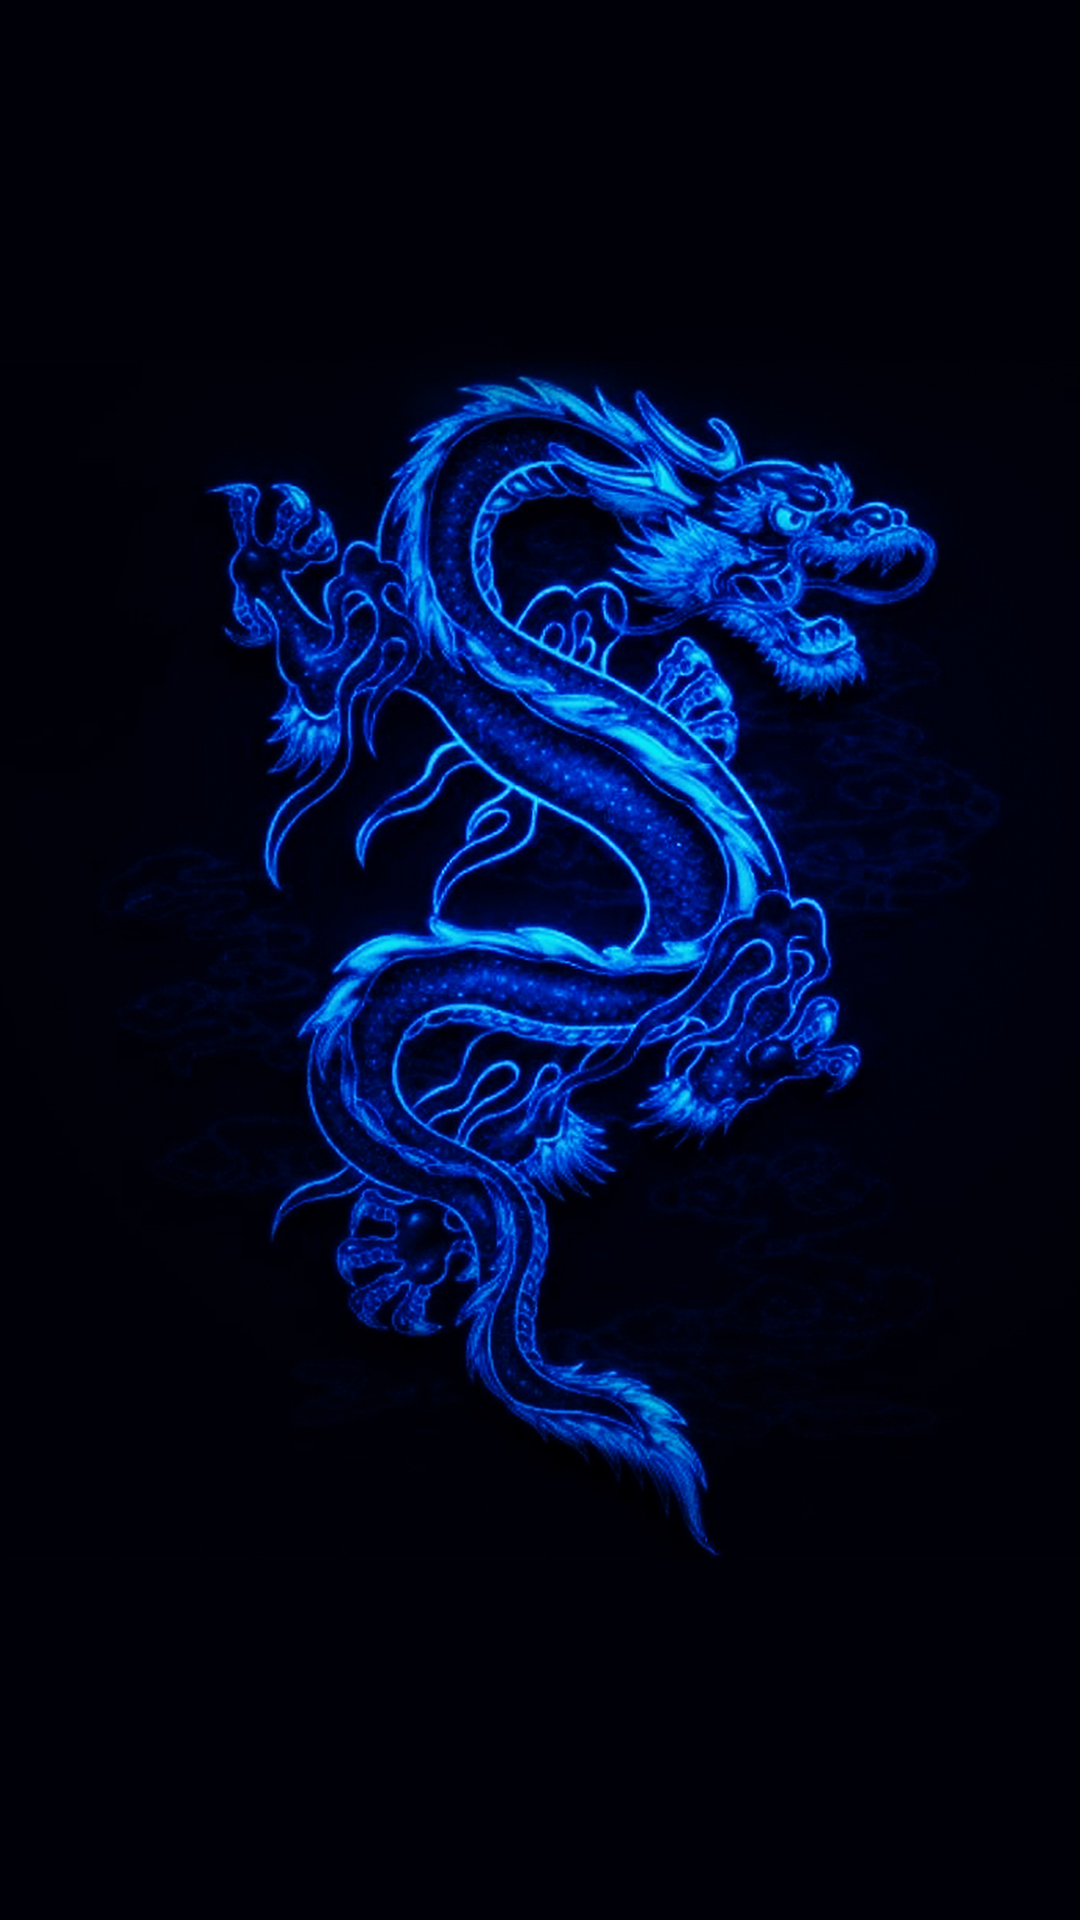 Free Hd Blue Dragon 2 Phone Wallpaper 5547